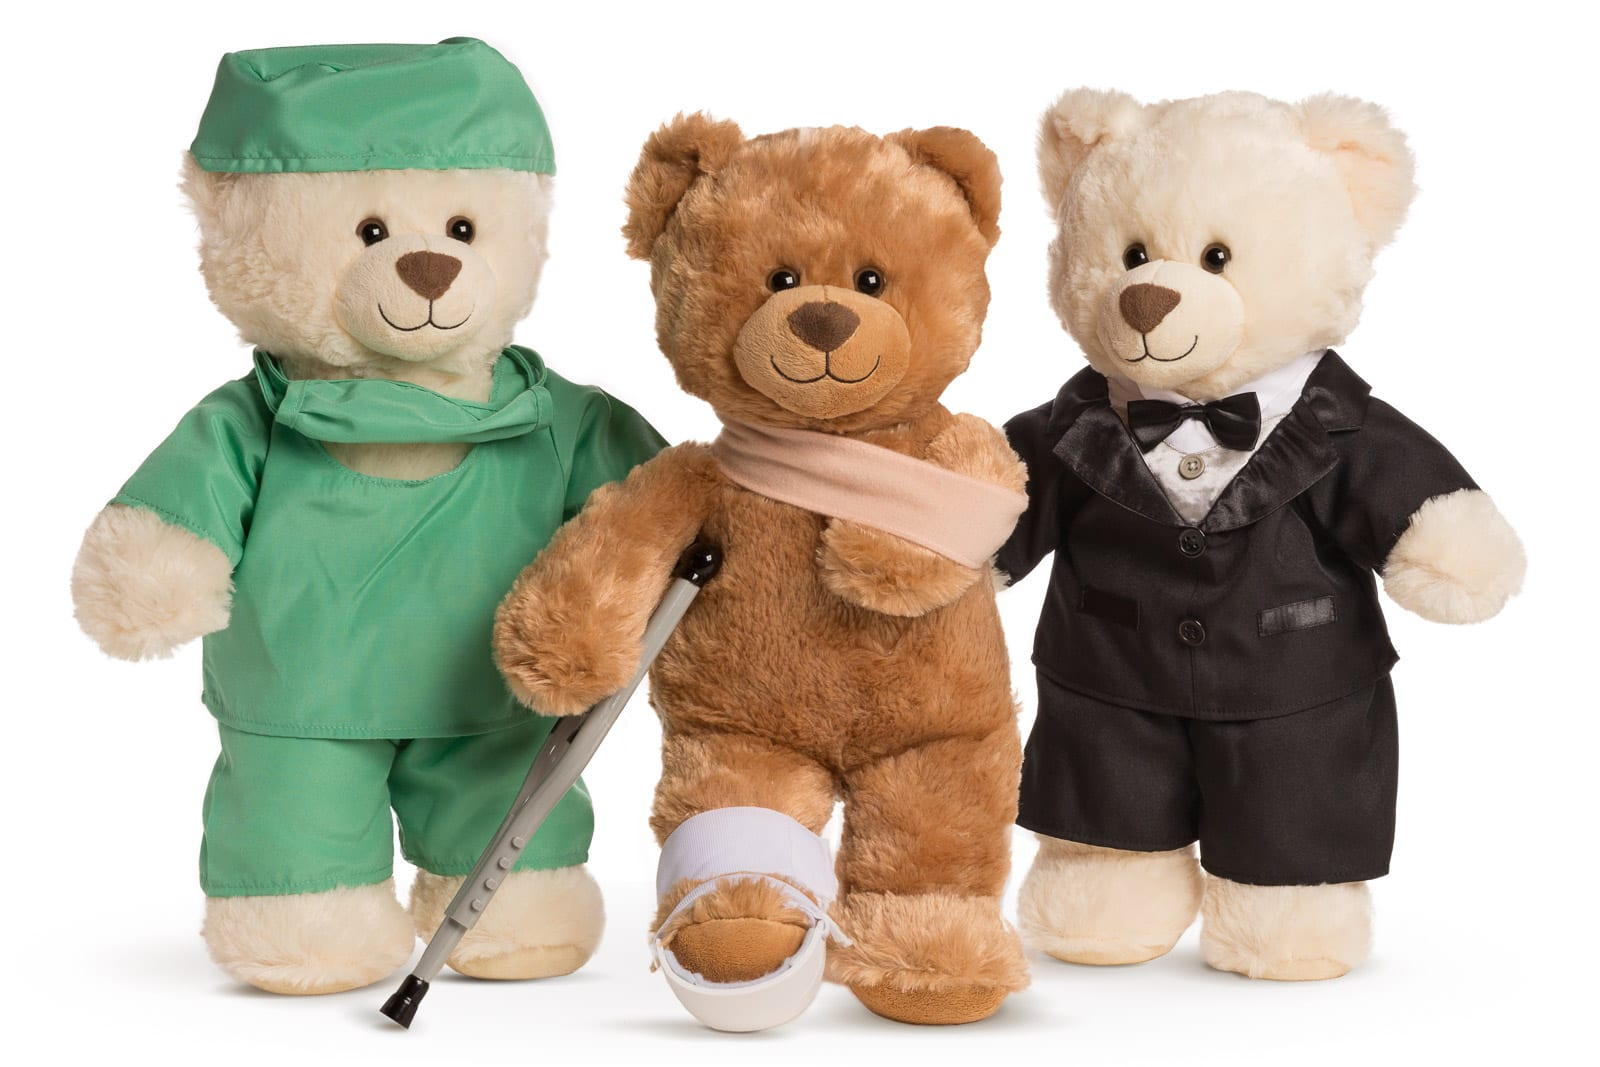 spire healthcare teddy bears wearing scrubs a suit and on crutches on white background